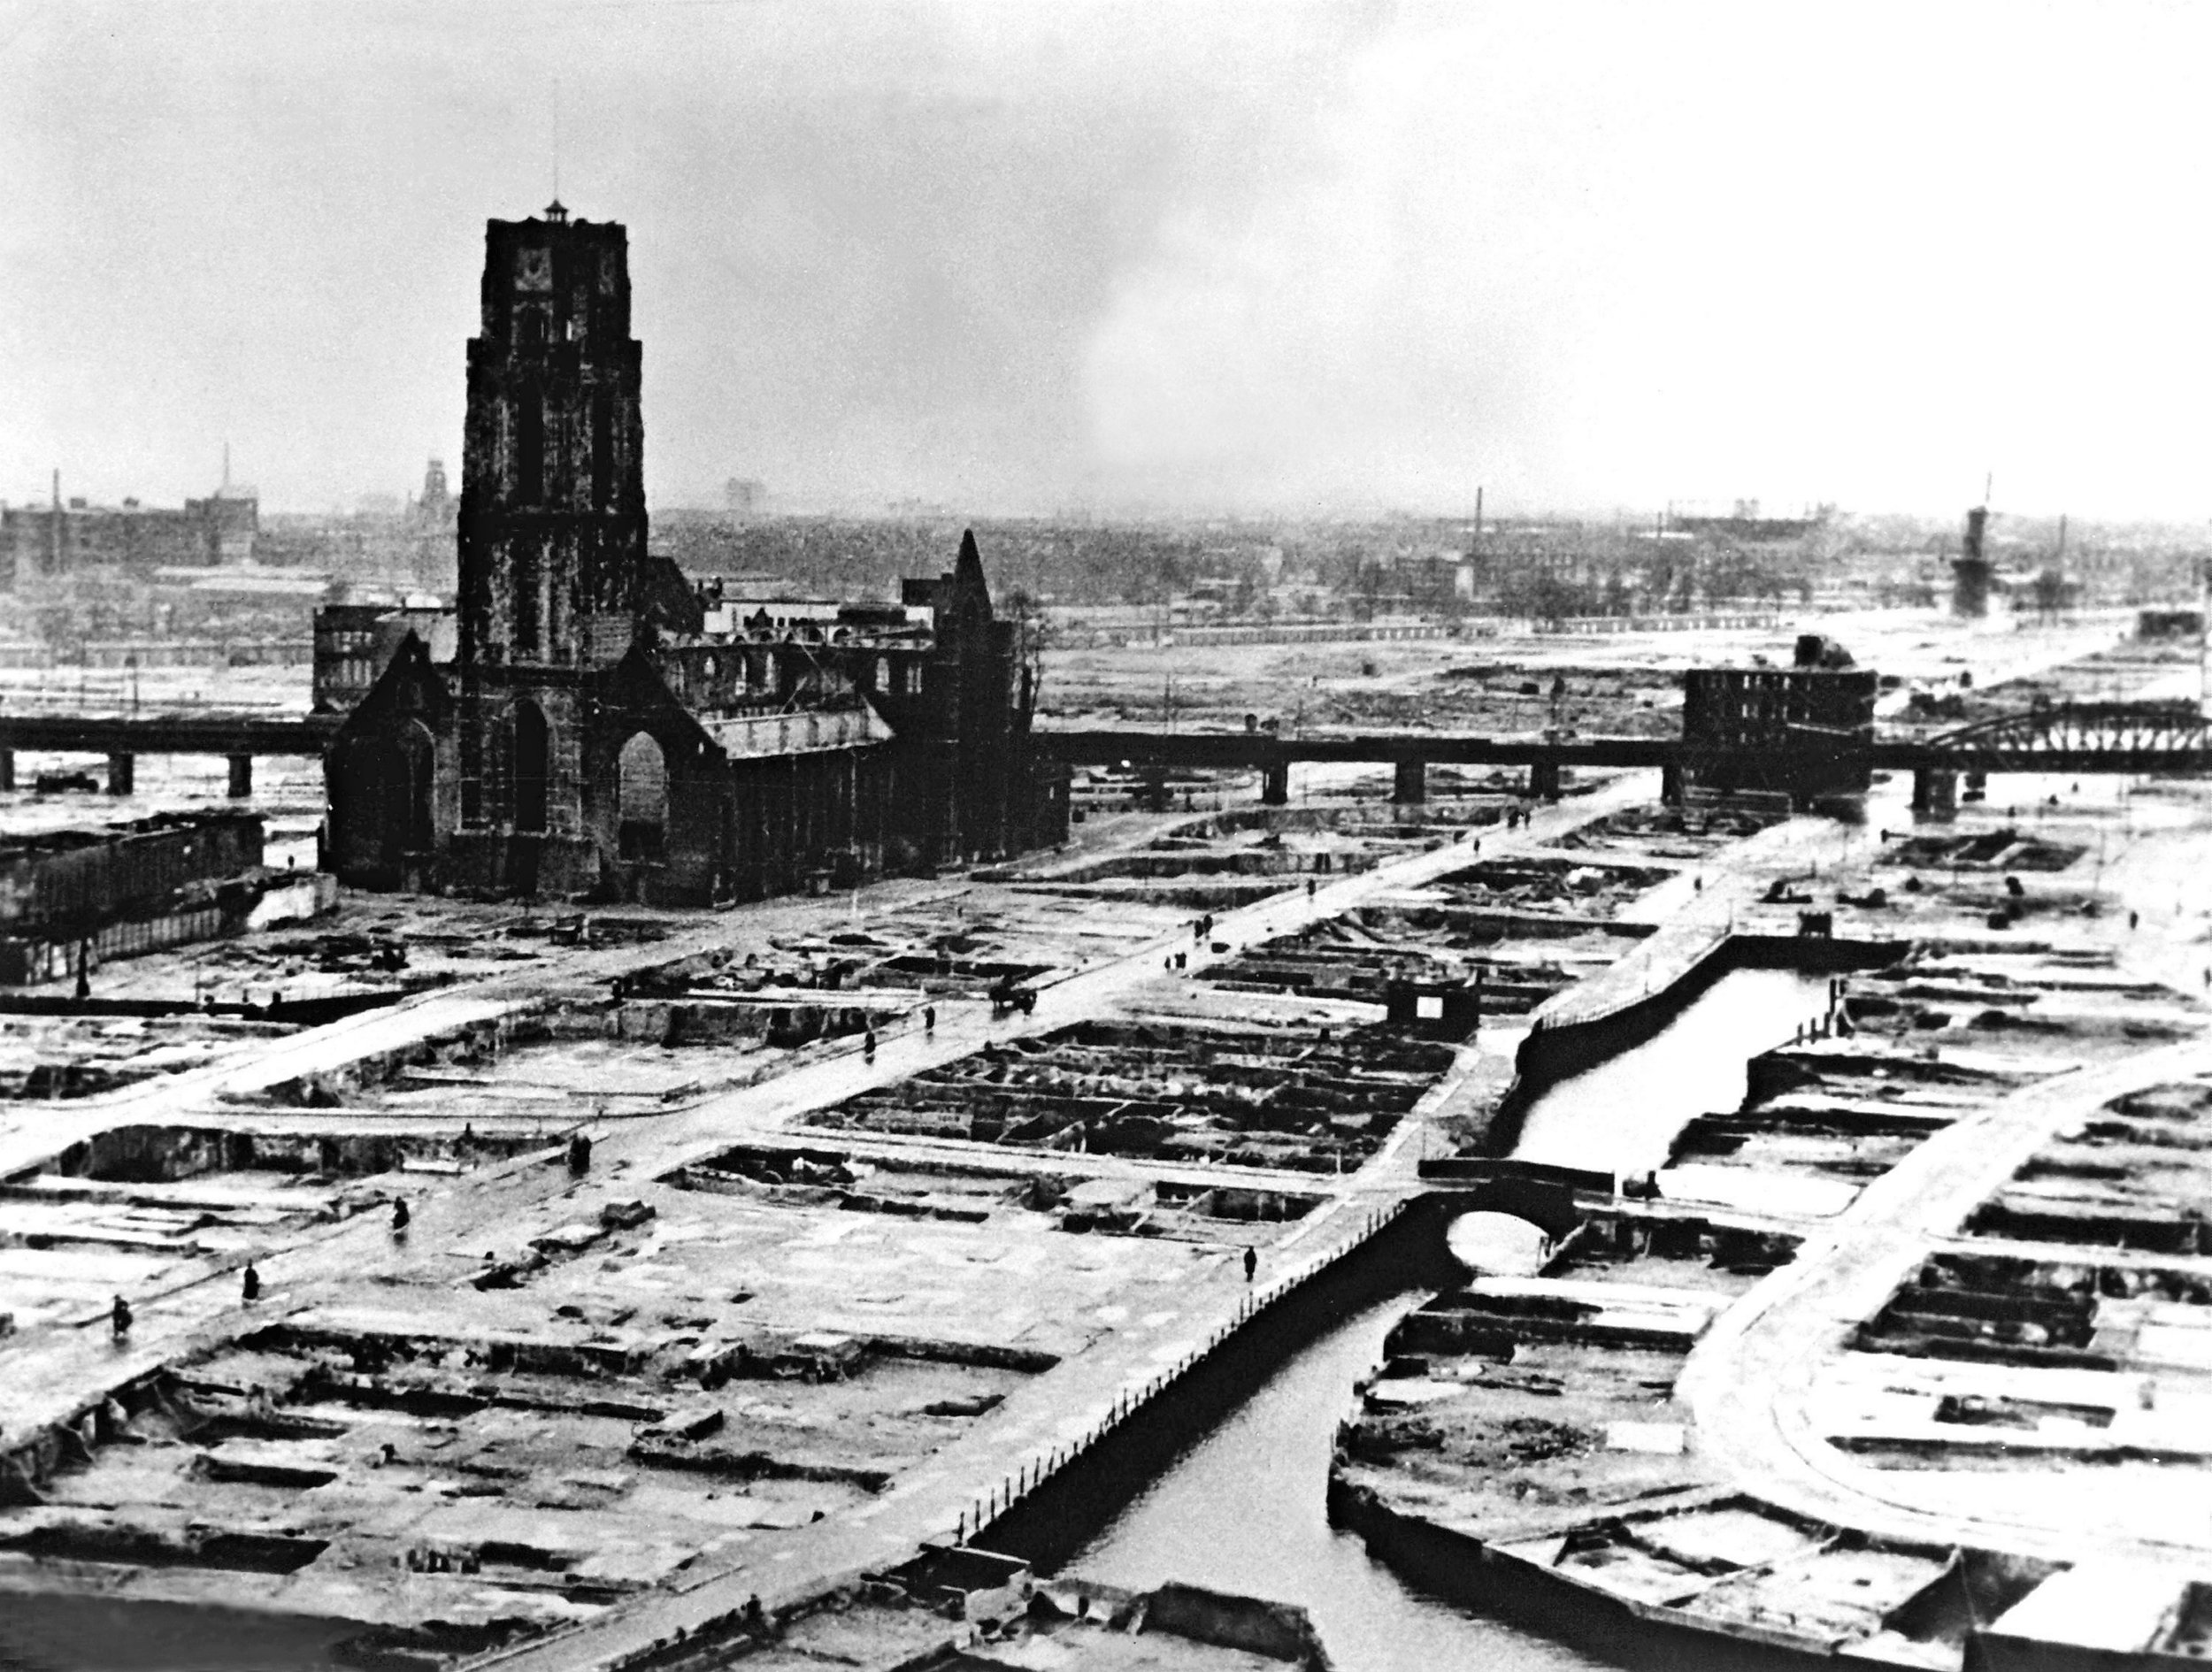 Rotterdam 1940 after bomobing gettyimages-869781426-1024x1024.jpg